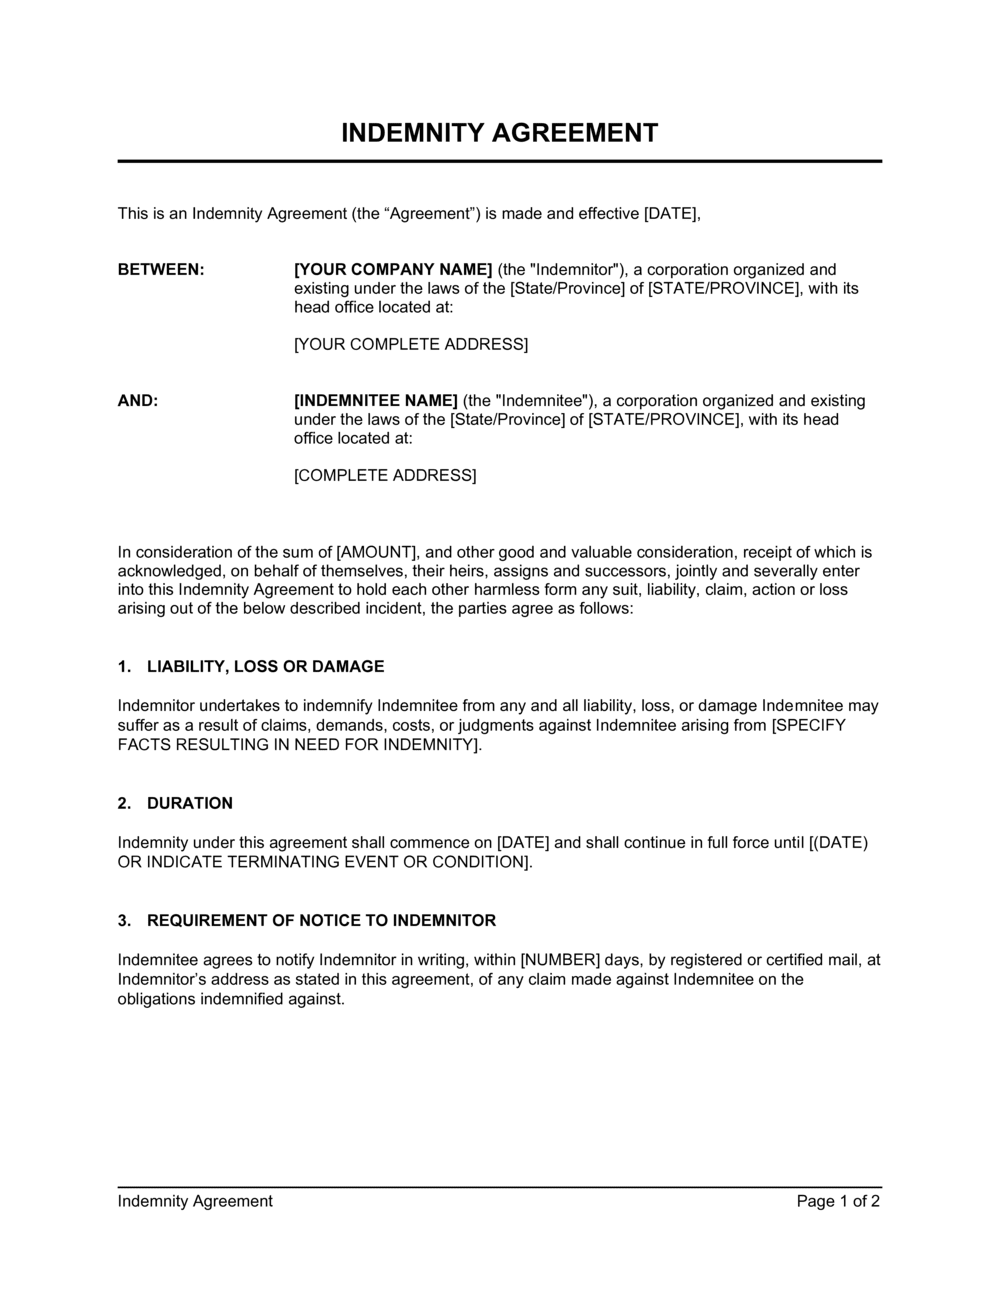 Business-in-a-Box's Indemnity Agreement Template